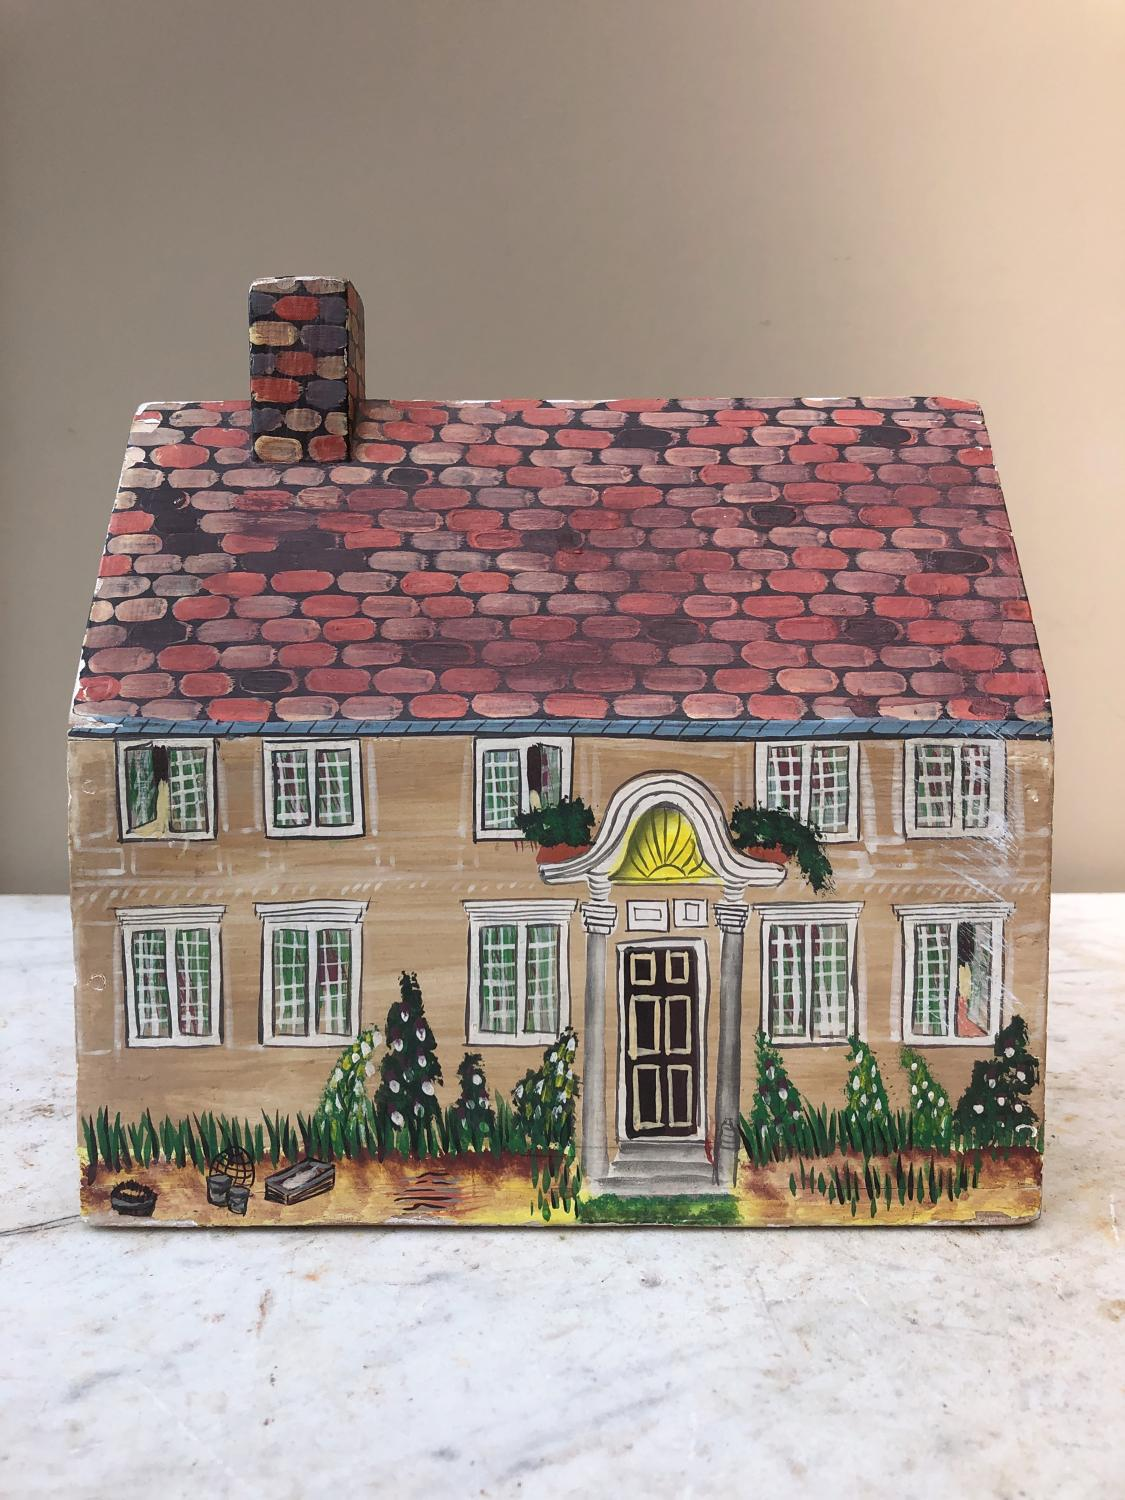 1940s Money Box - Wonderful Painted House